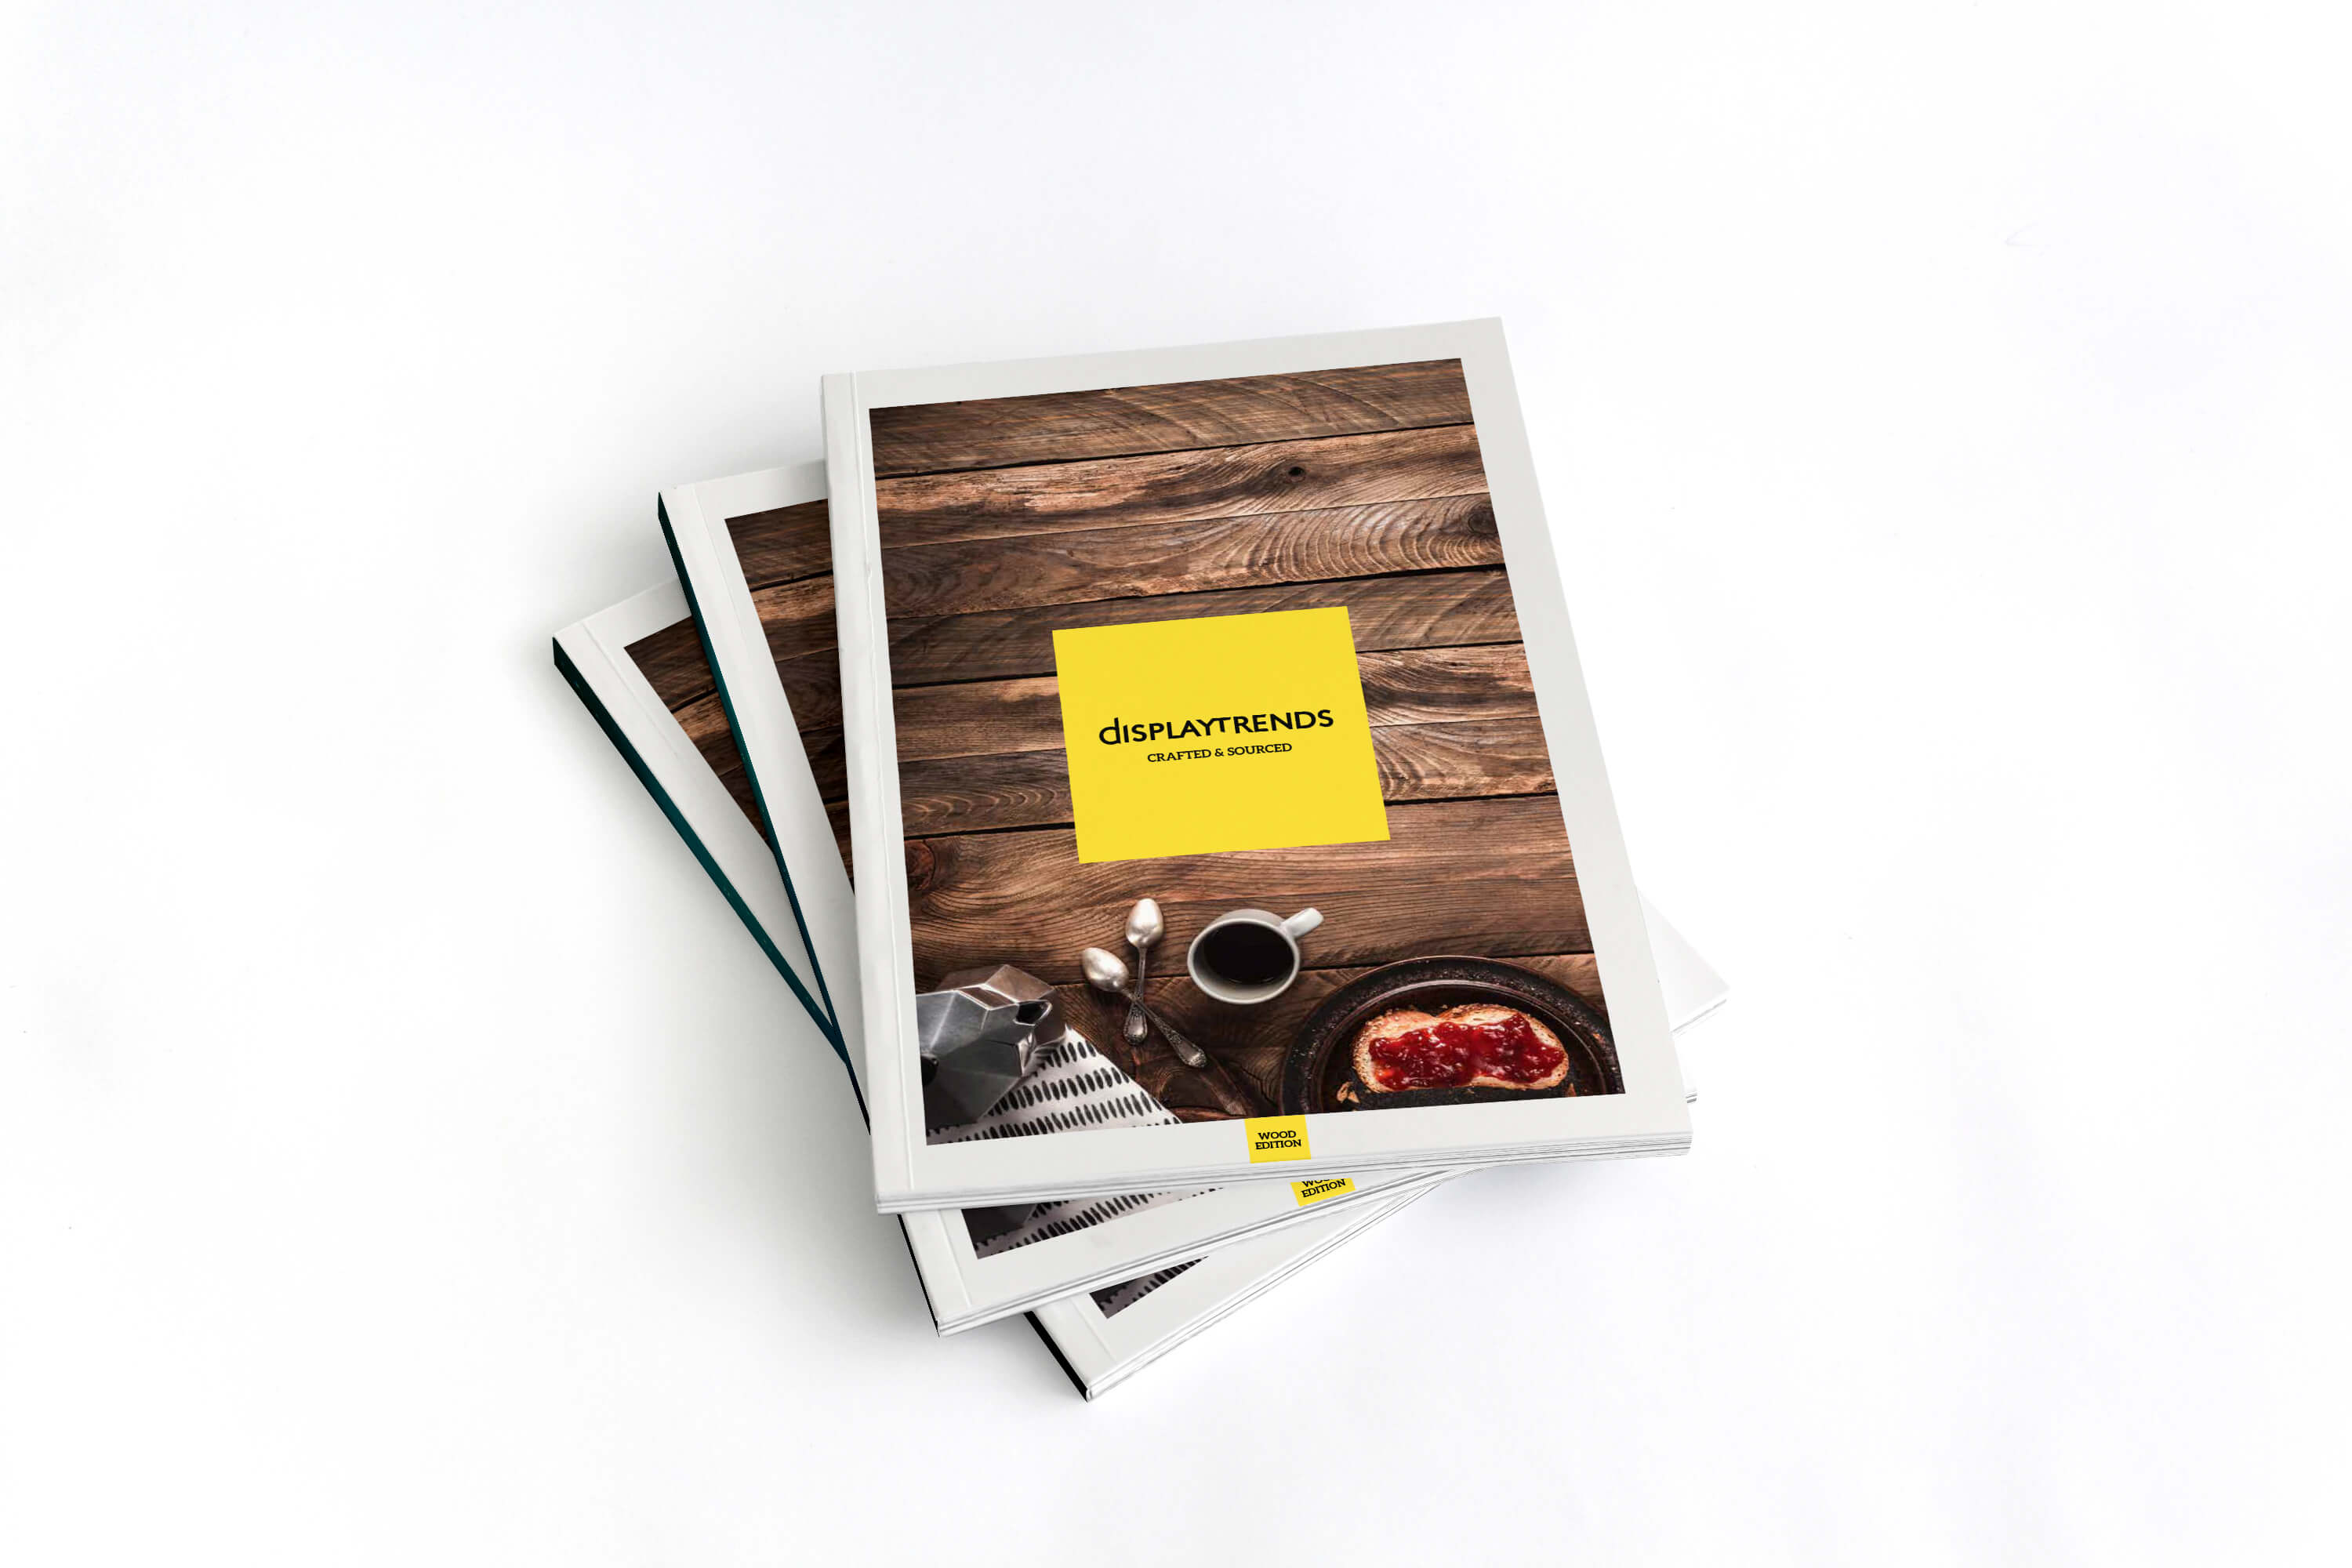 A stack of printed Display Trends catalogues showing design of front cover